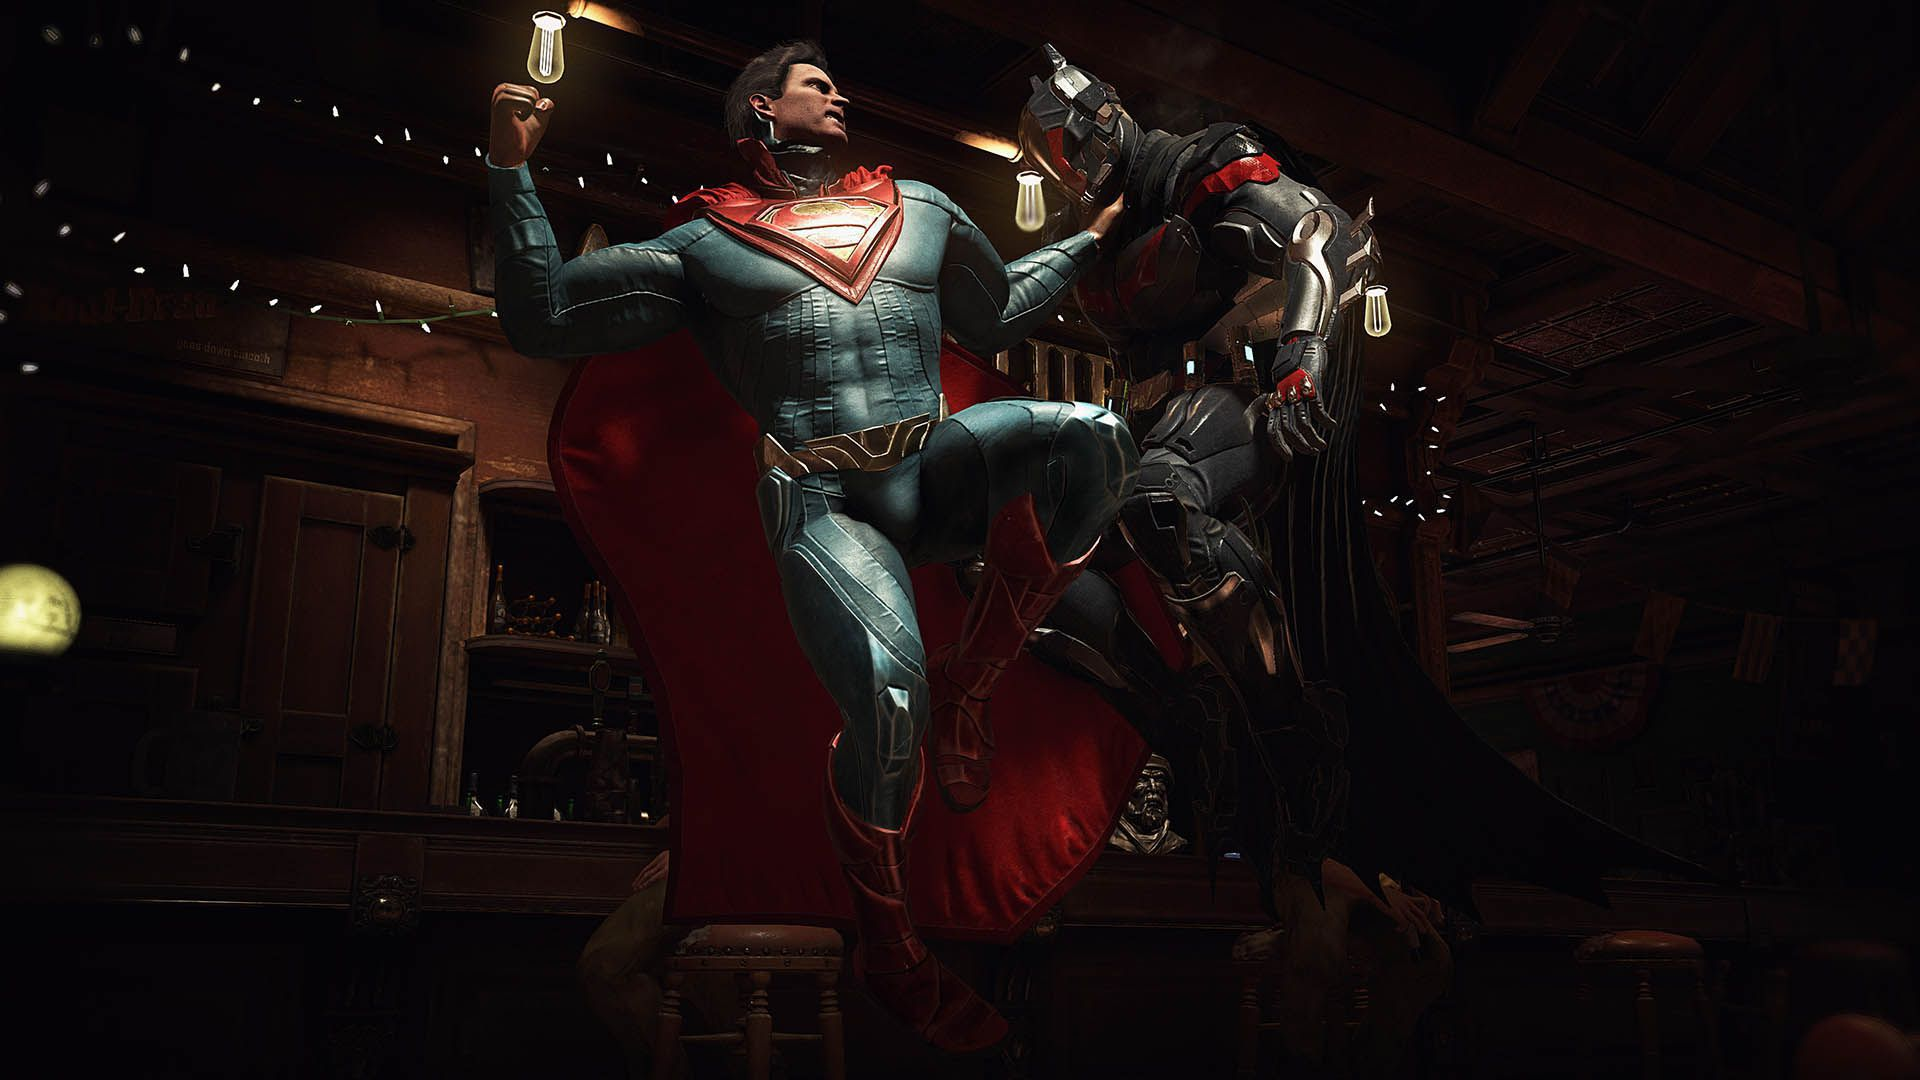 Injustice 2 High Quality Wallpapers